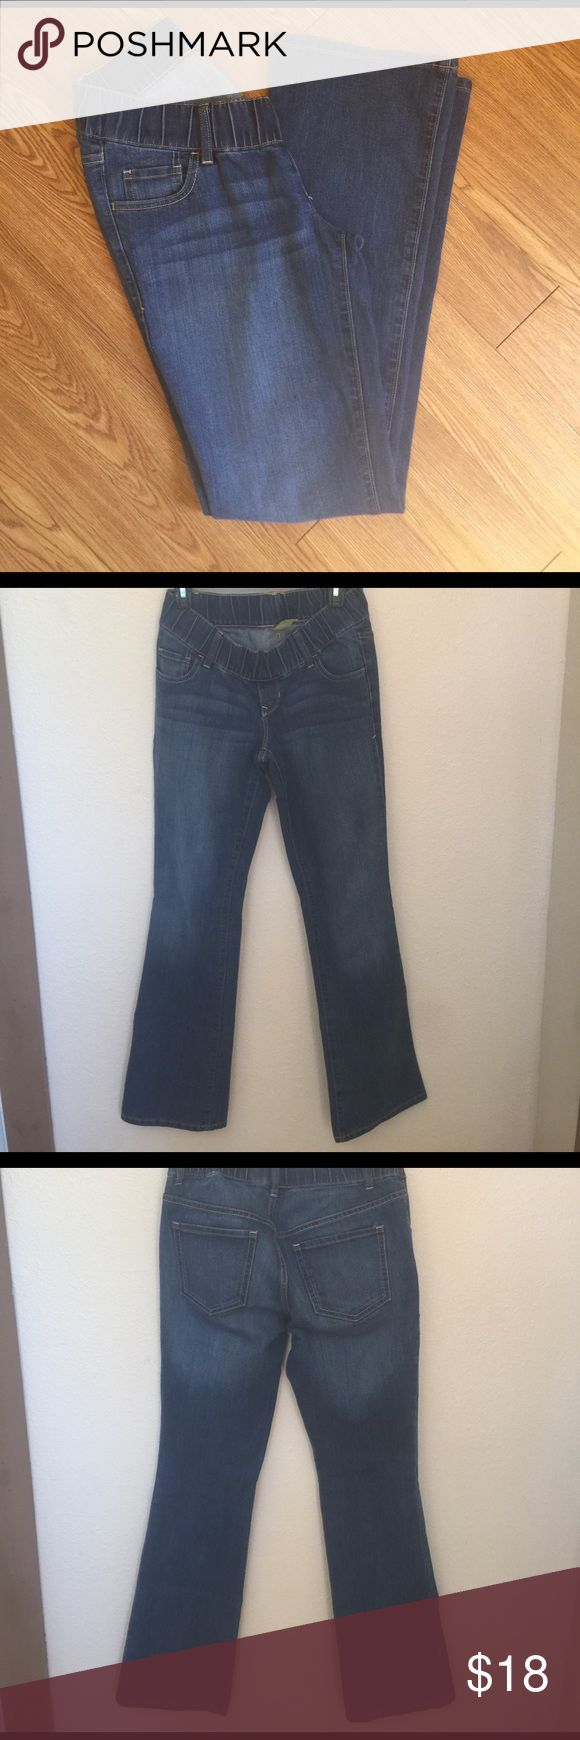 """Old Navy Maternity Jeans Old Navy boot cut maternity jeans. Excellent used condition NO rips, tears, stains, or pealing.  Size: 2 regular 32"""" inseam.   Material: 98% cotton 14% poly 1% Lycra.    With low rise elastic waist band (super comfy and cooler for spring/ summer) Old Navy Jeans Boot Cut"""